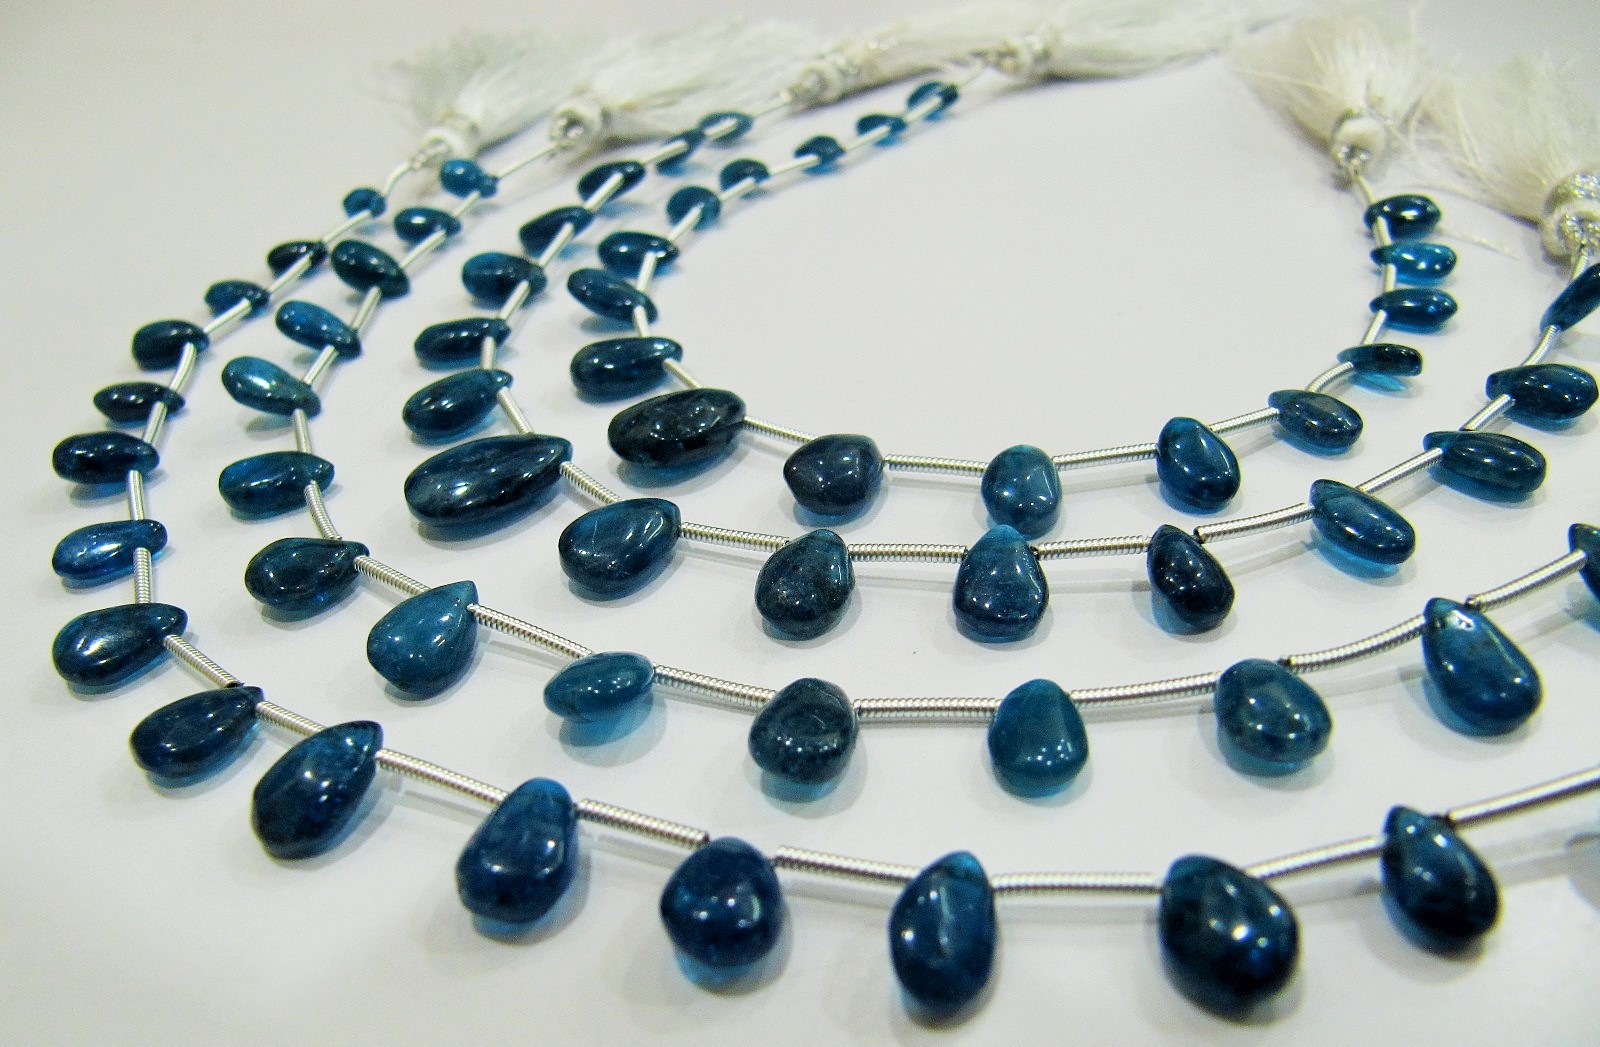 AAA Quality Natural Neon Apatite Pear Shape Beads.